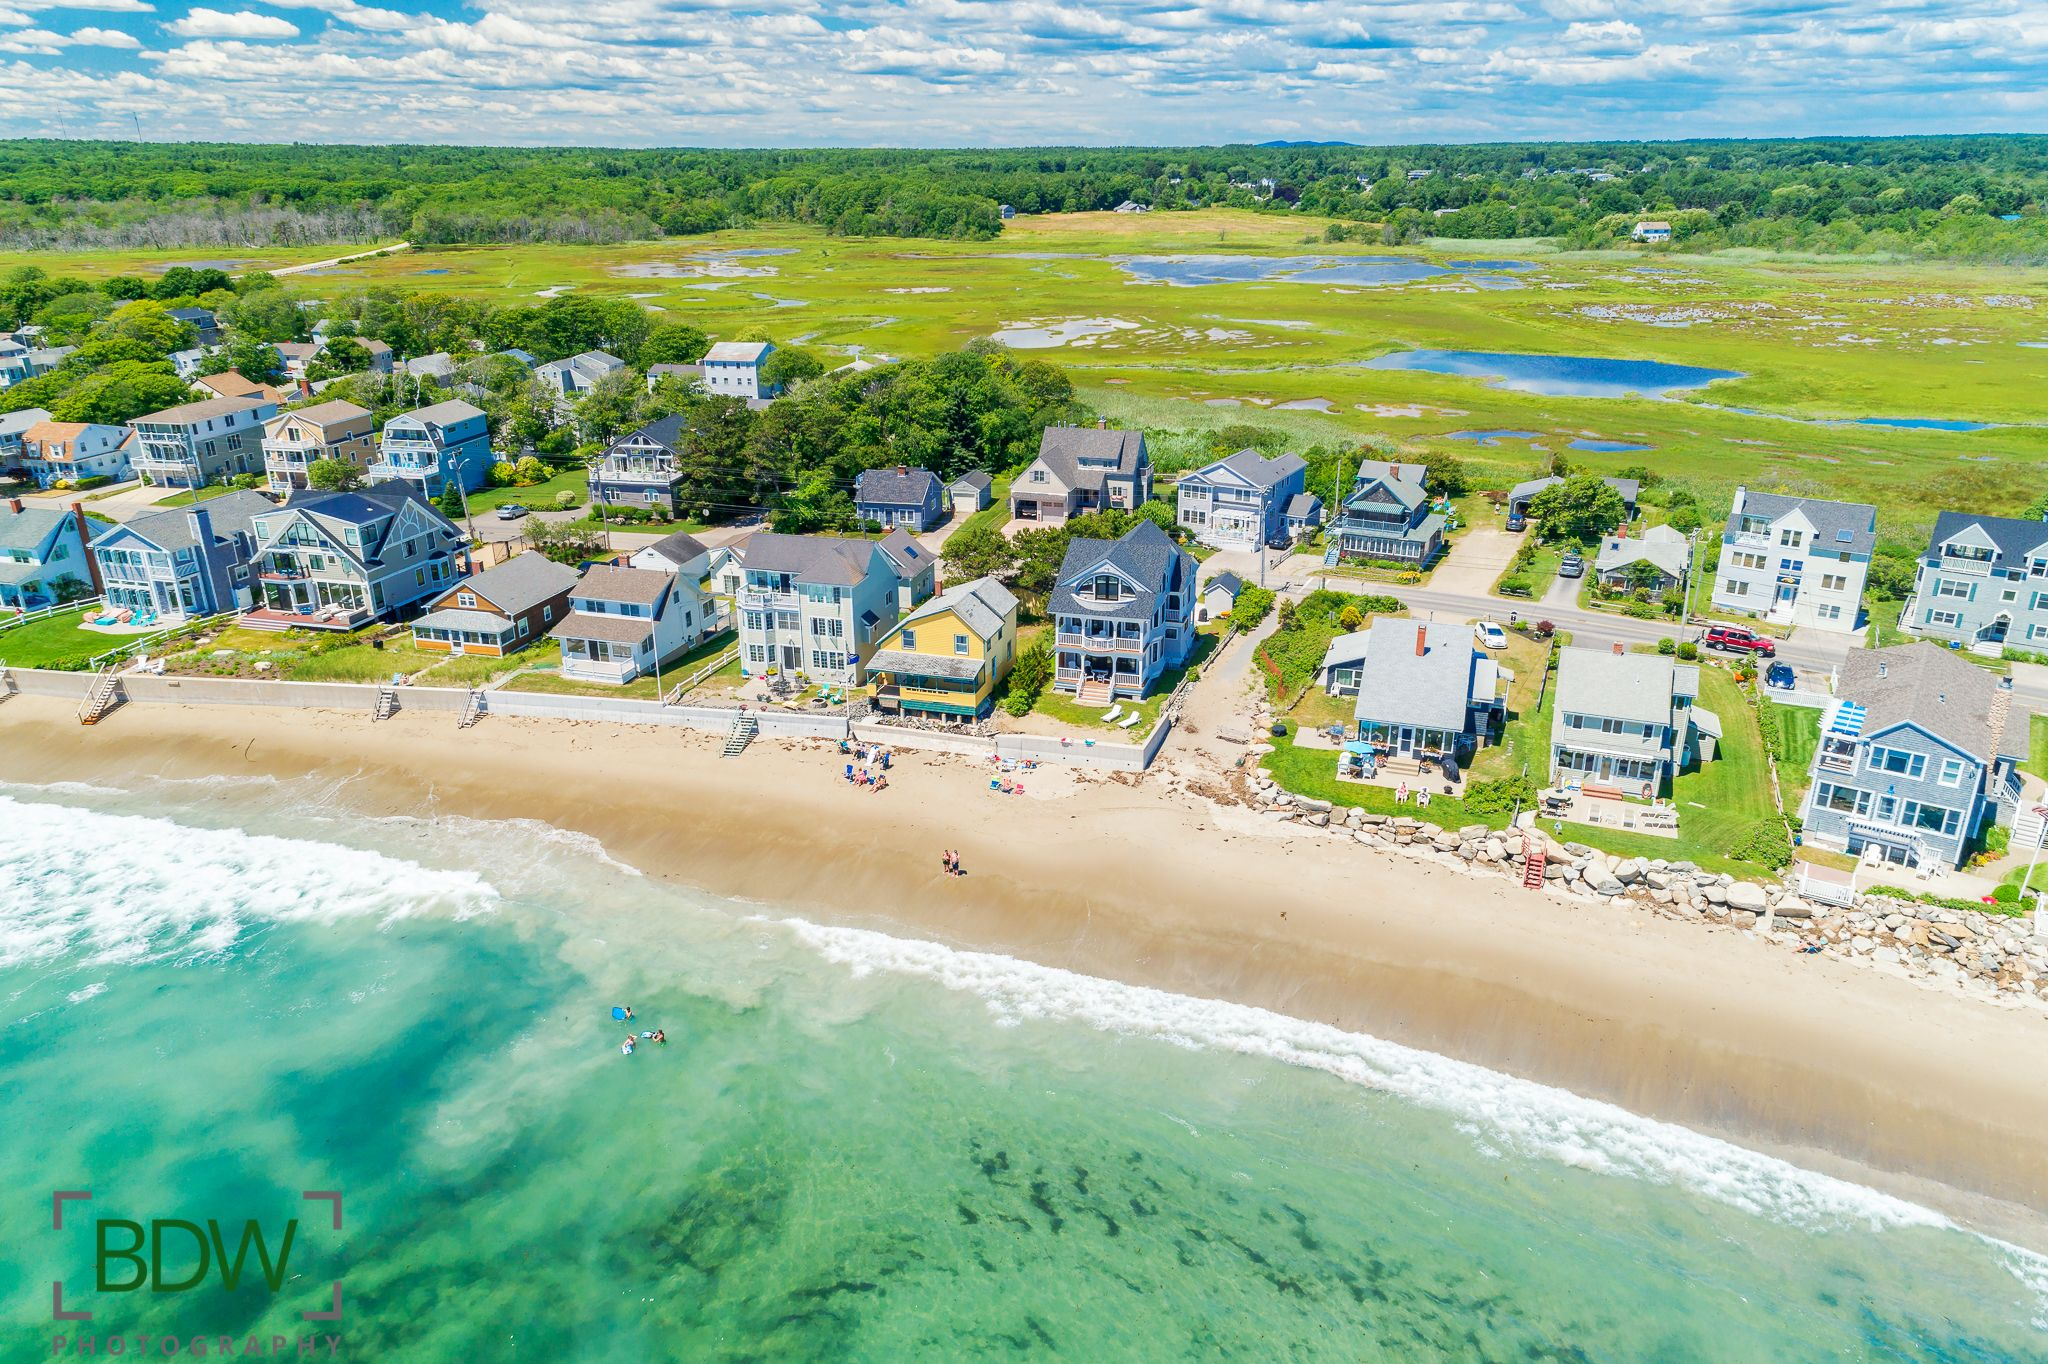 Moody beach wells maine maine drone photography bdw